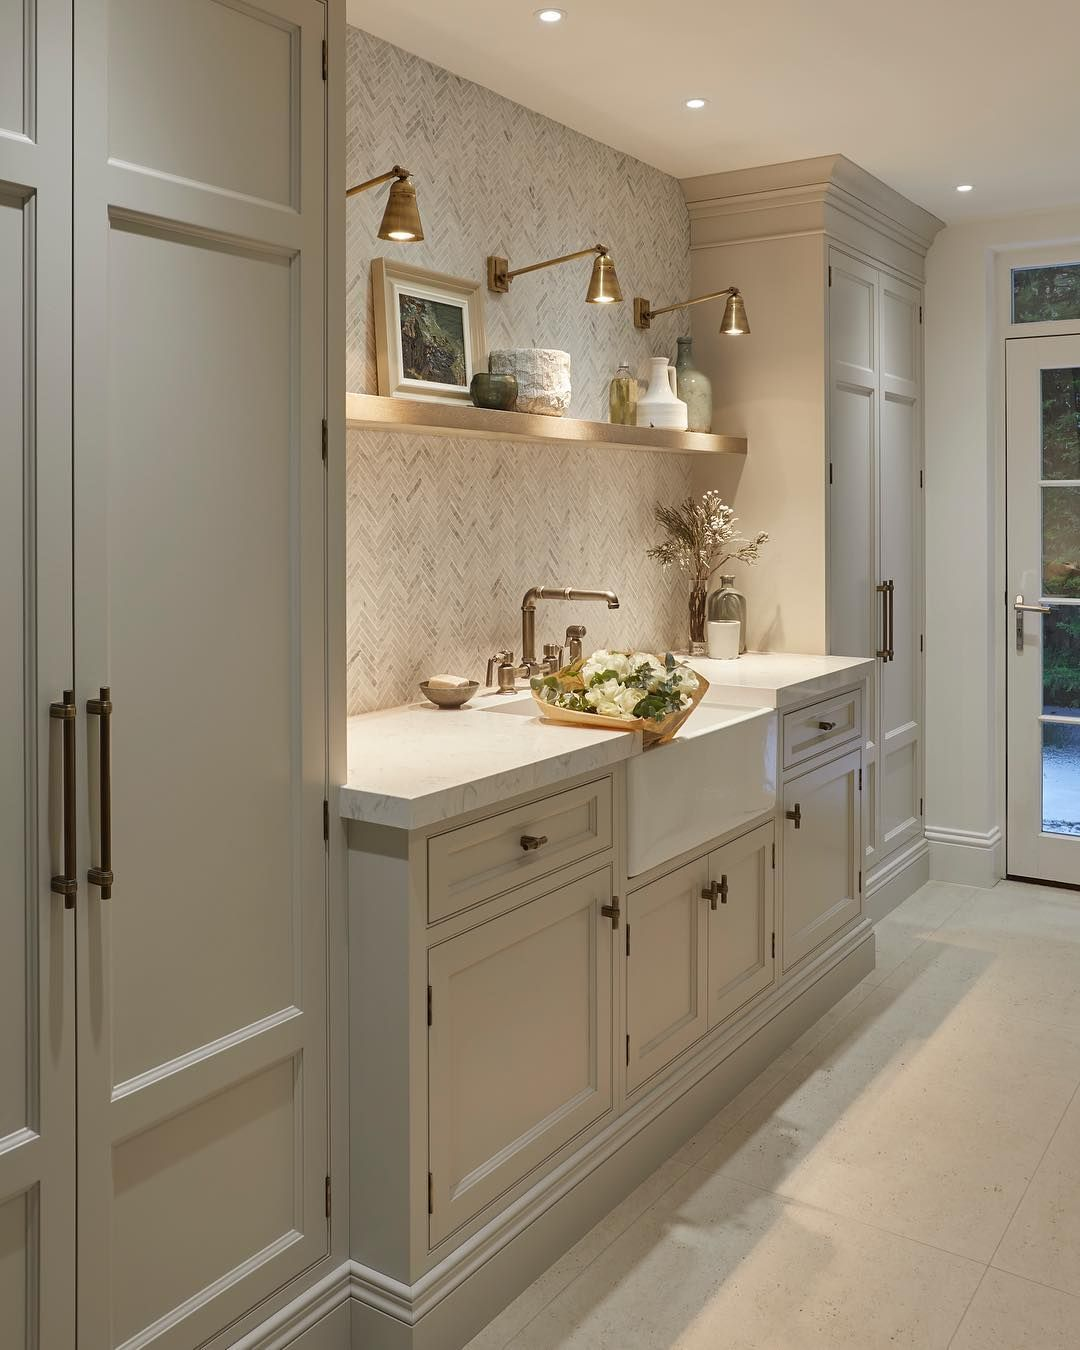 Just Got The Professional Photos Back Of The Utility Room